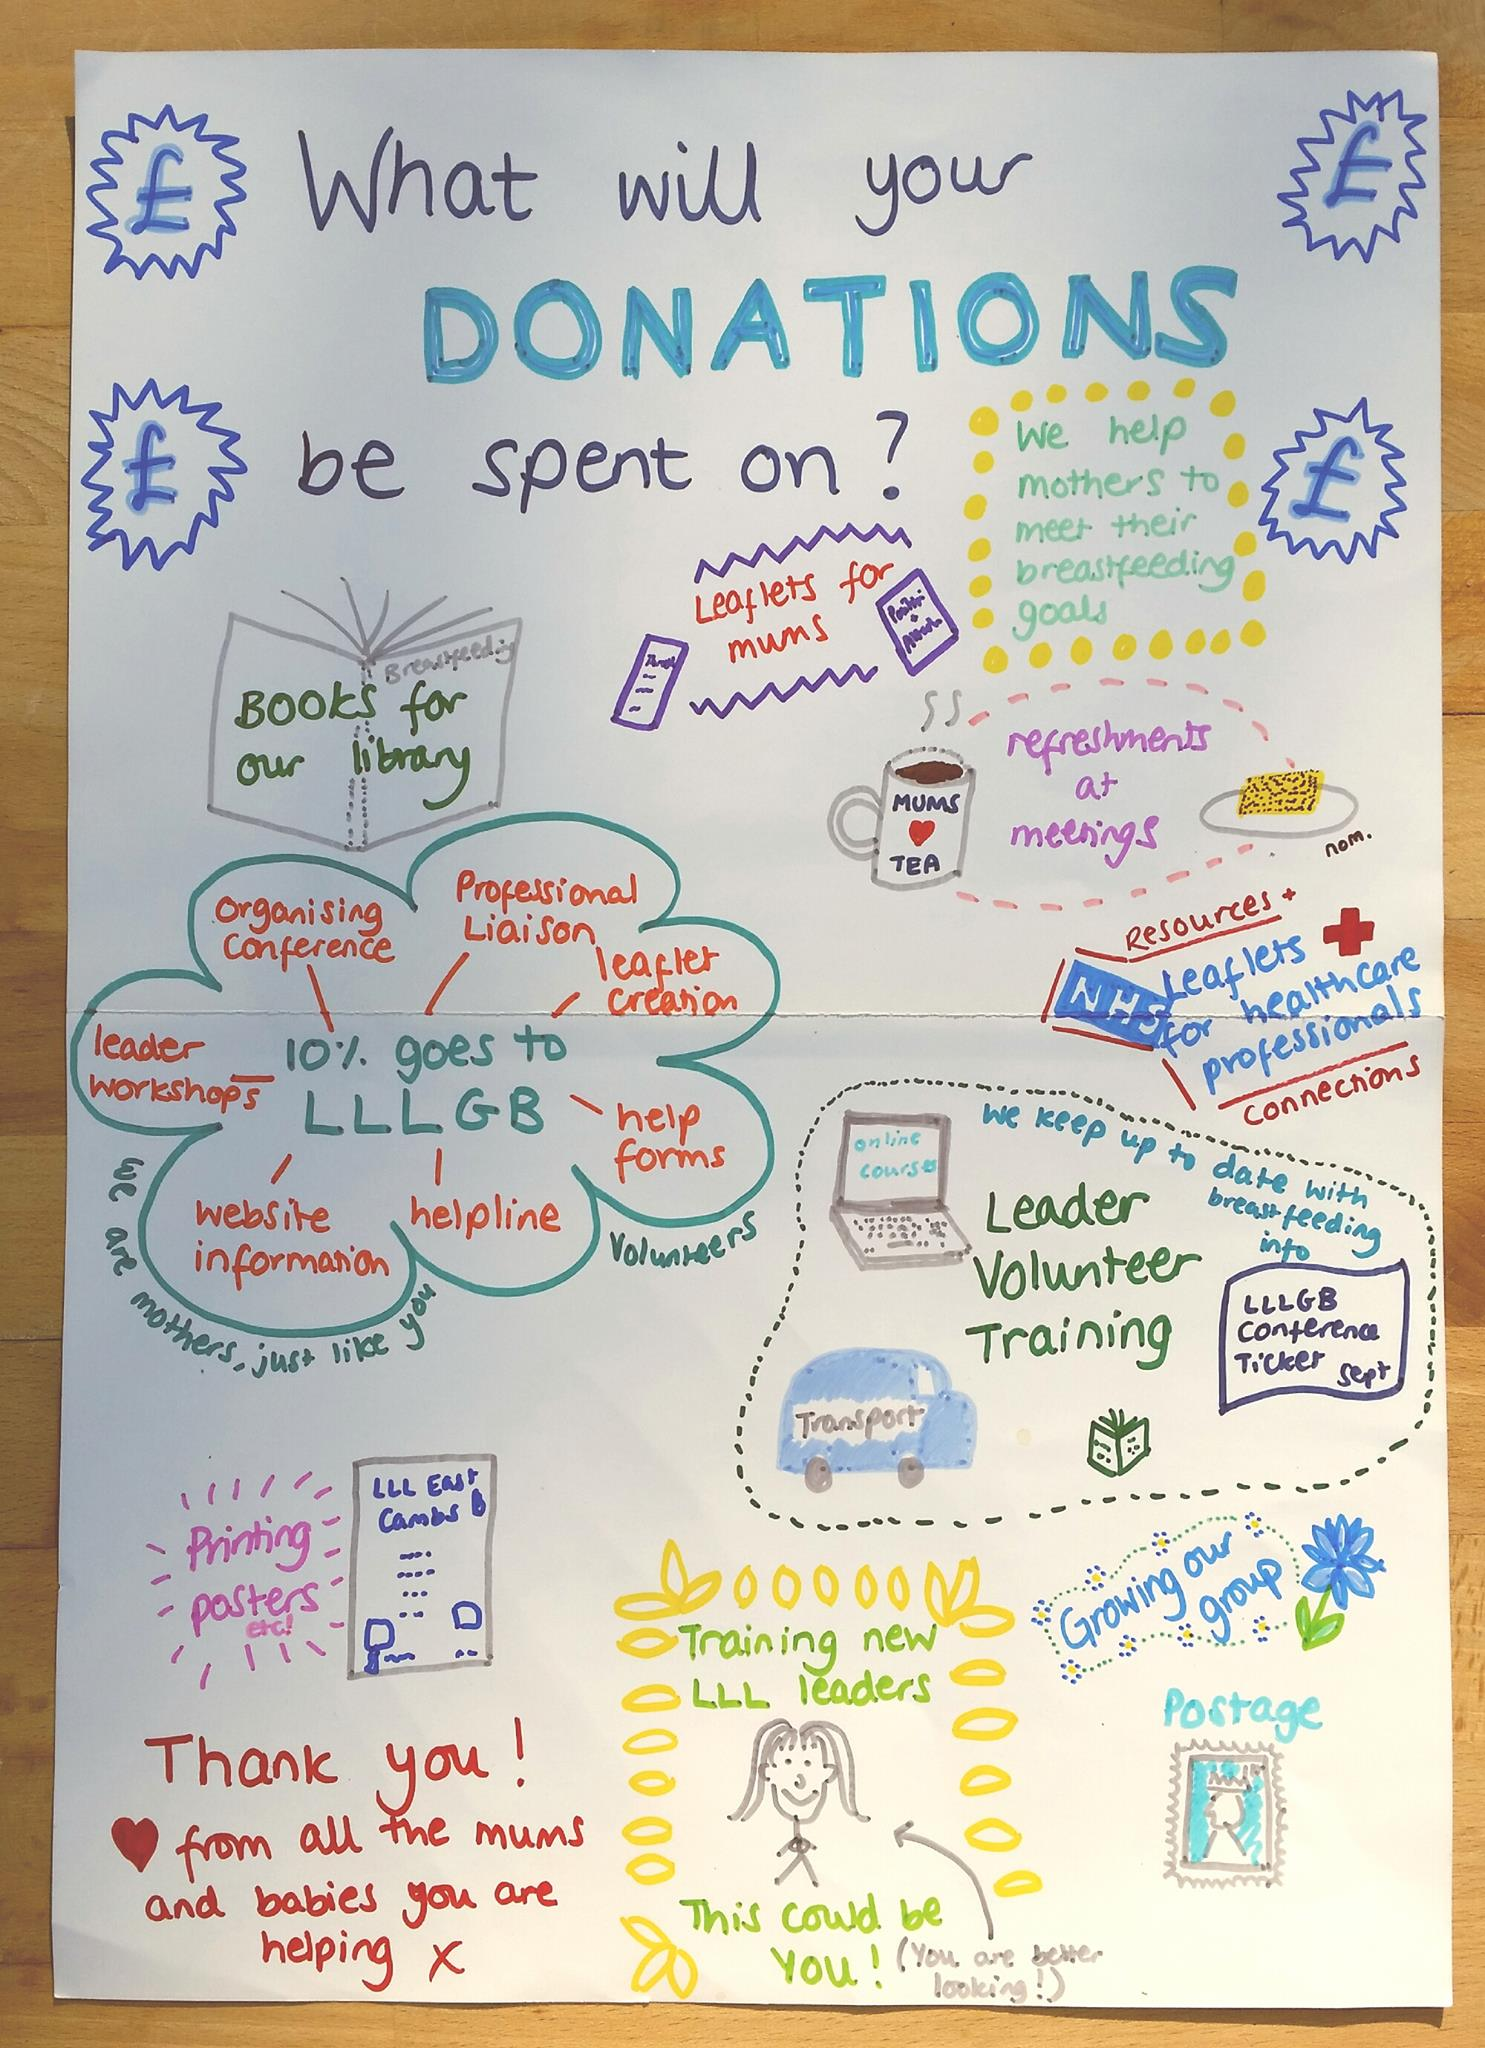 Where does your donation go?